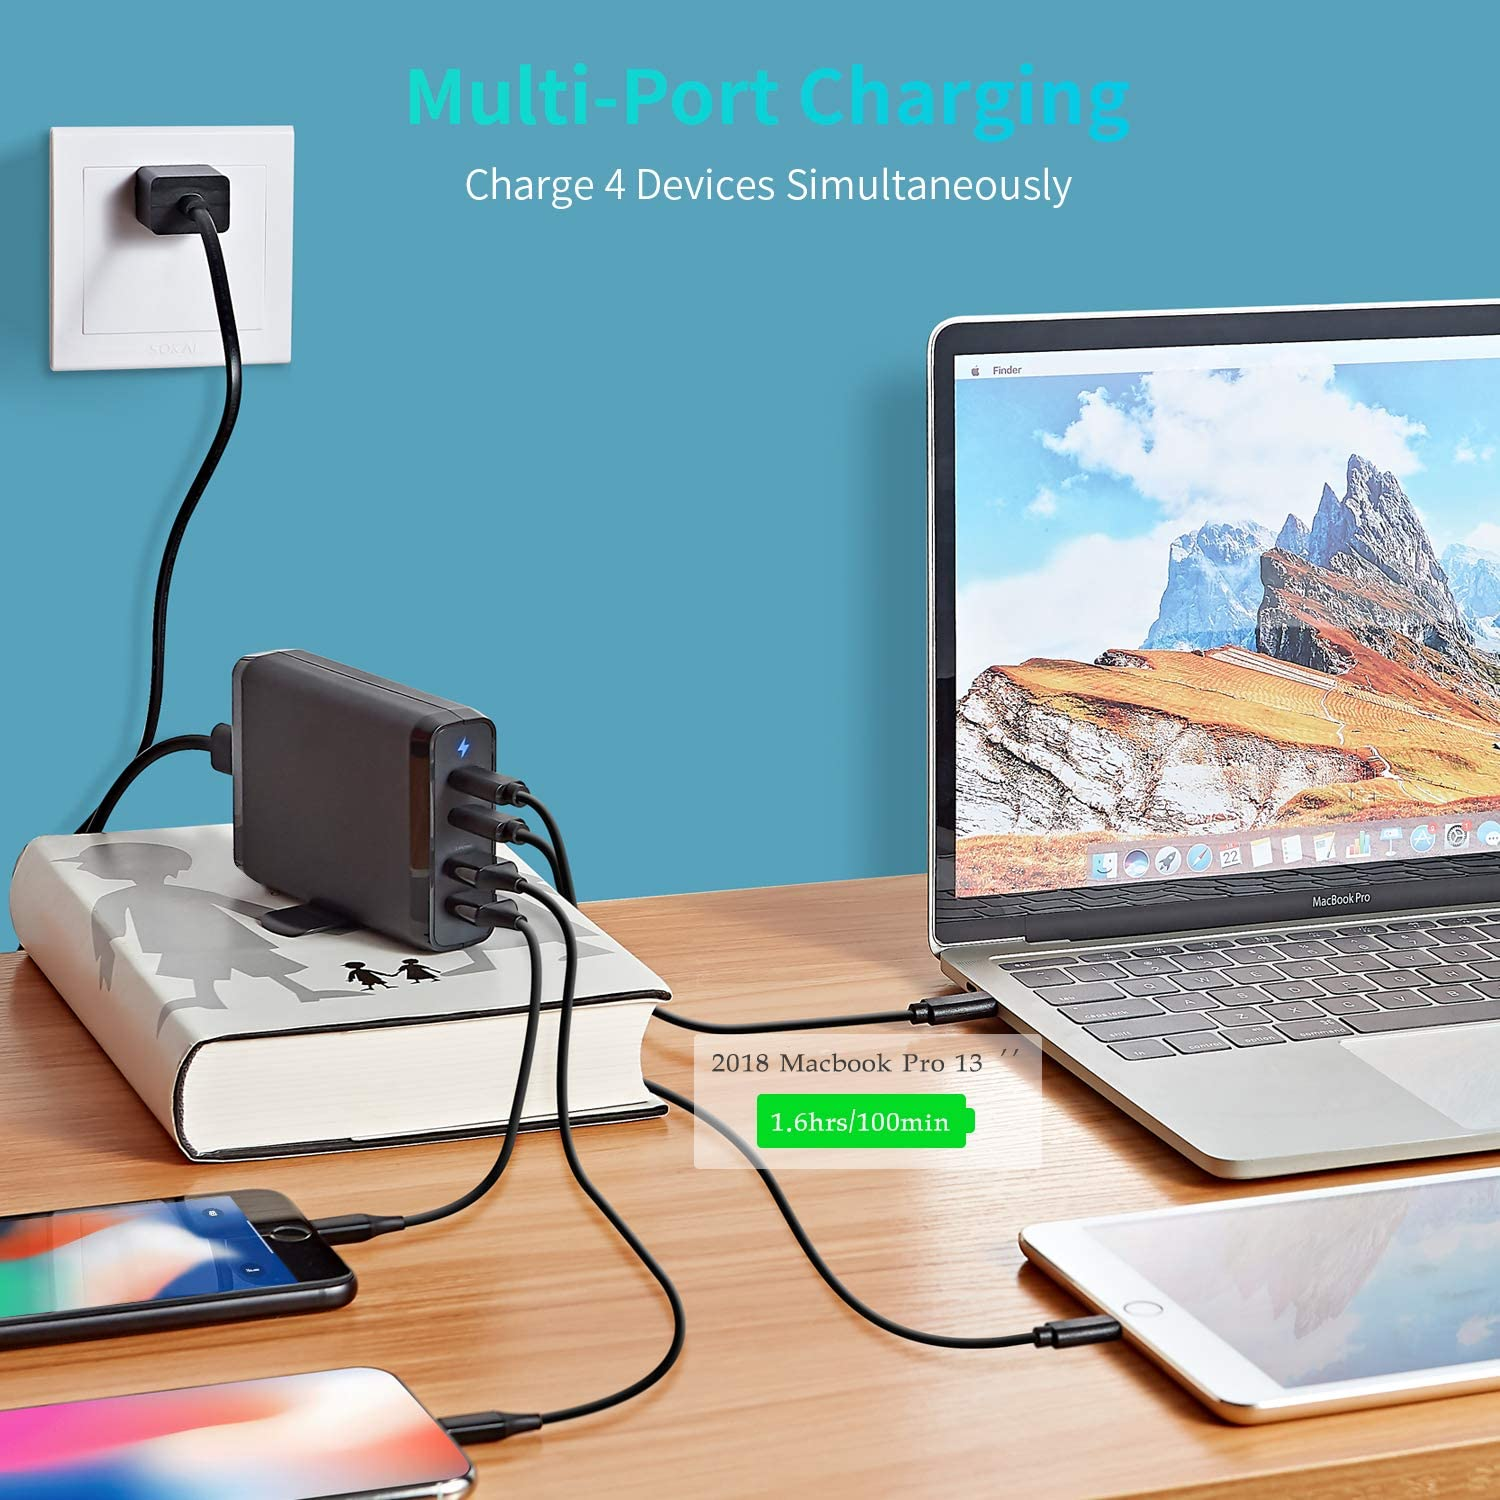 with 60W /& 18W USB C PD Power Delivery Adapter and 2 USB A Ports 12W USB C Wall Charger 4-Port